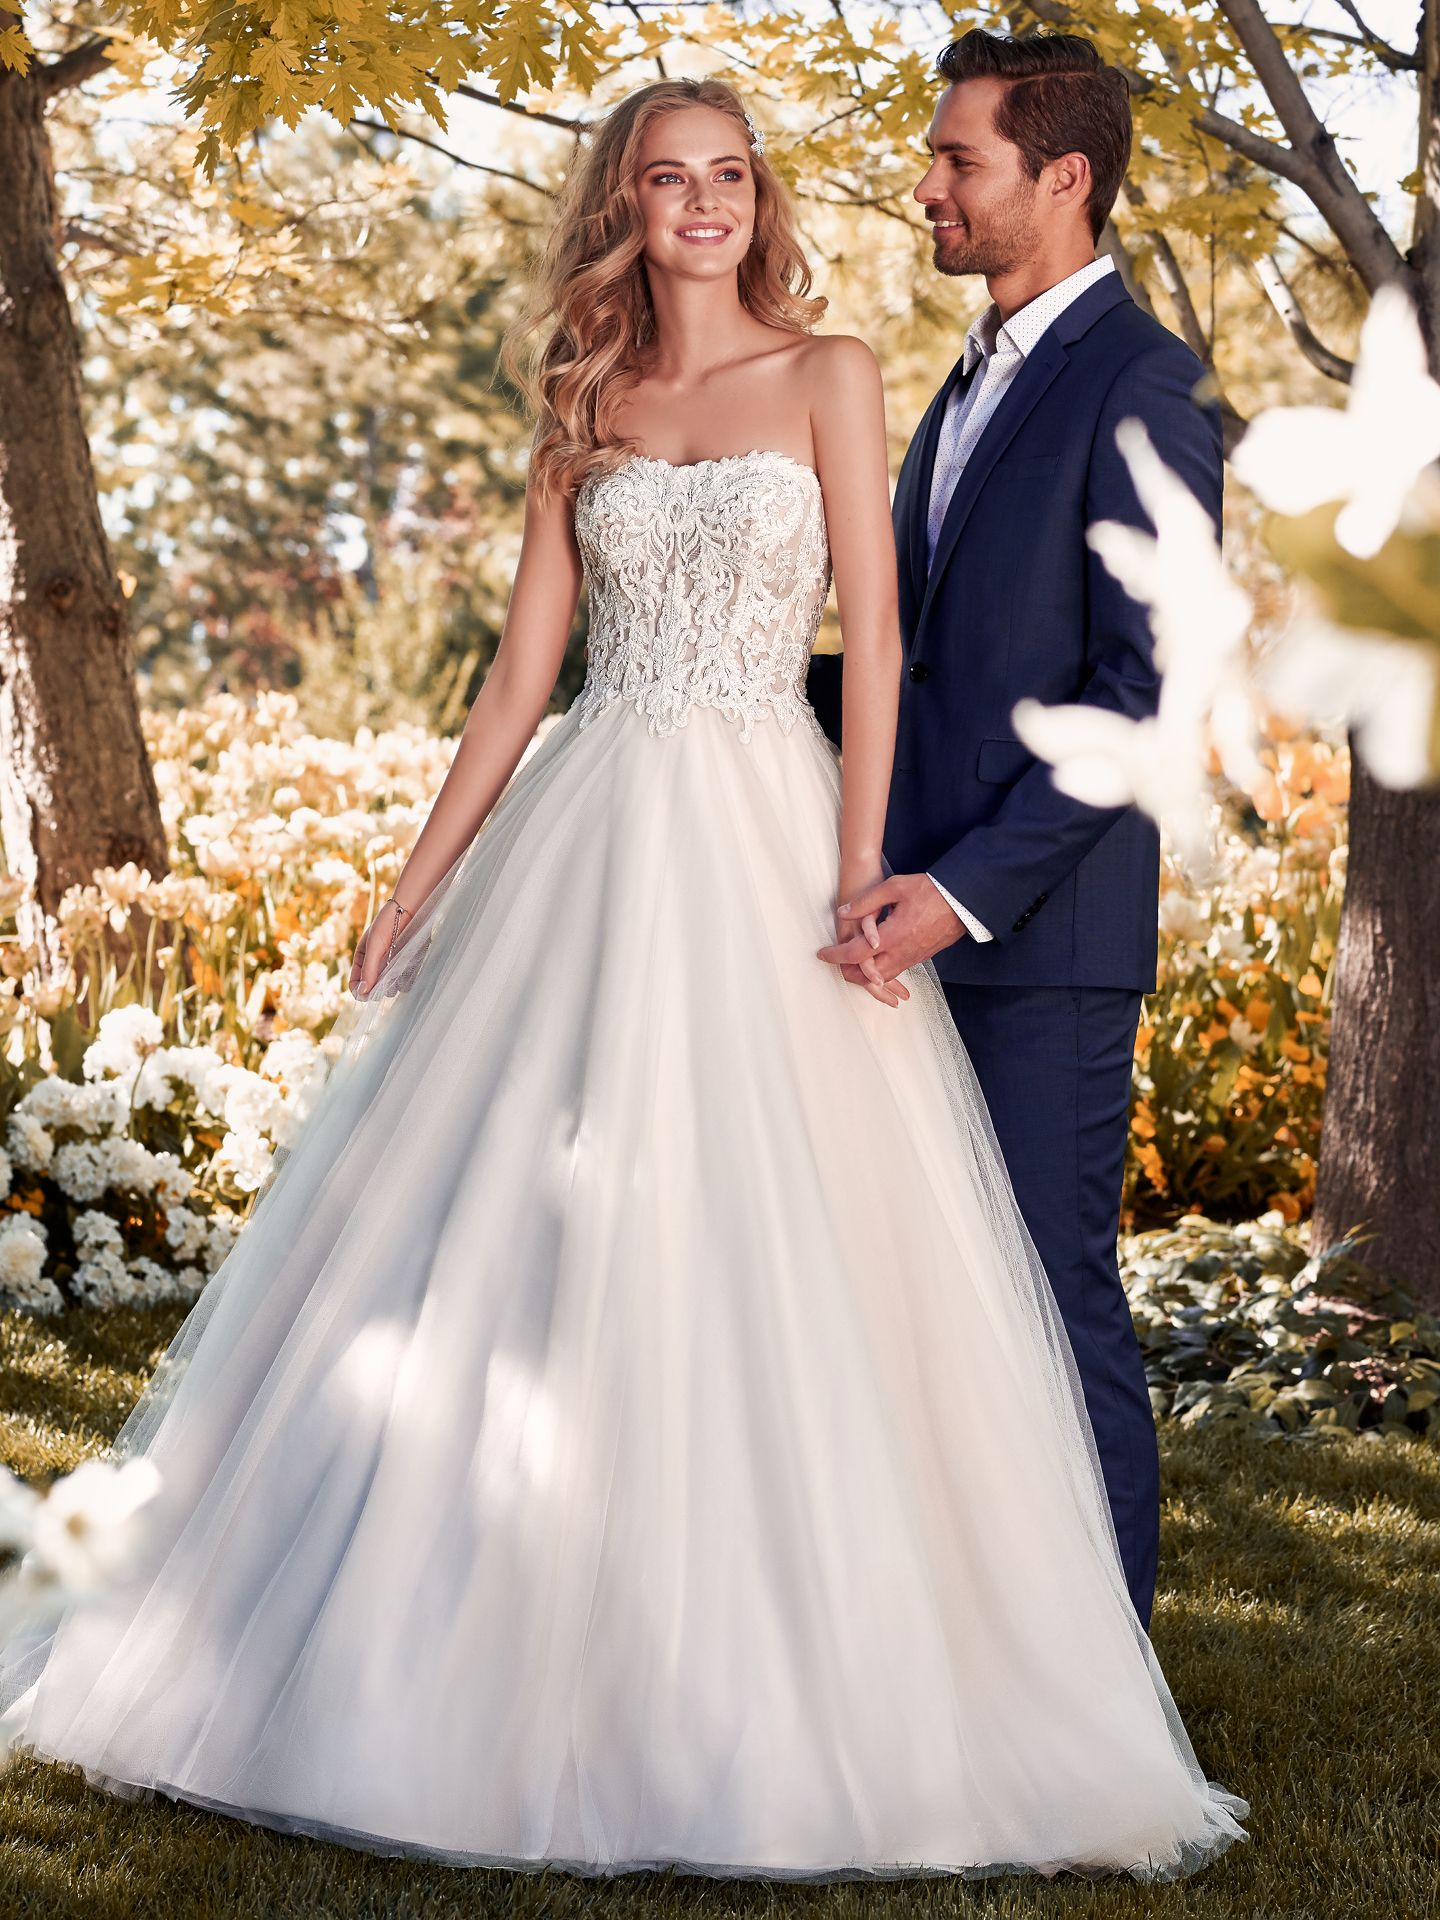 Lavonne by Rebecca Ingram. This princess wedding dress features a sheer bodice accented in exposed boning and beaded lace motifs. Ballgown skirt comprised of tulle. Complete with strapless scoop neckline. Finished with pearl buttons over zipper closure.